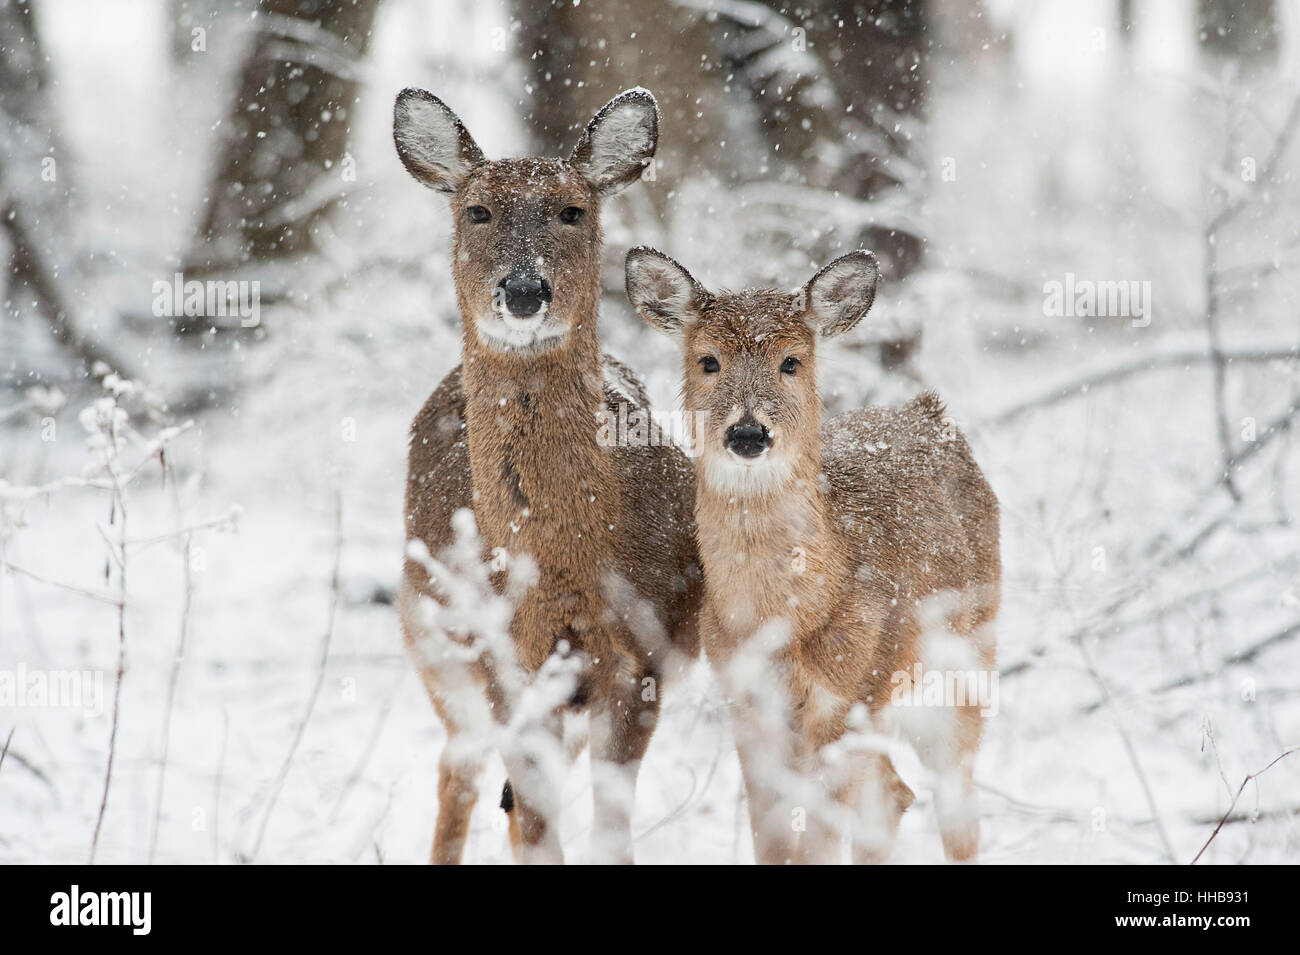 A pair of Whitetail Deer stand together in the falling snow. - Stock Image